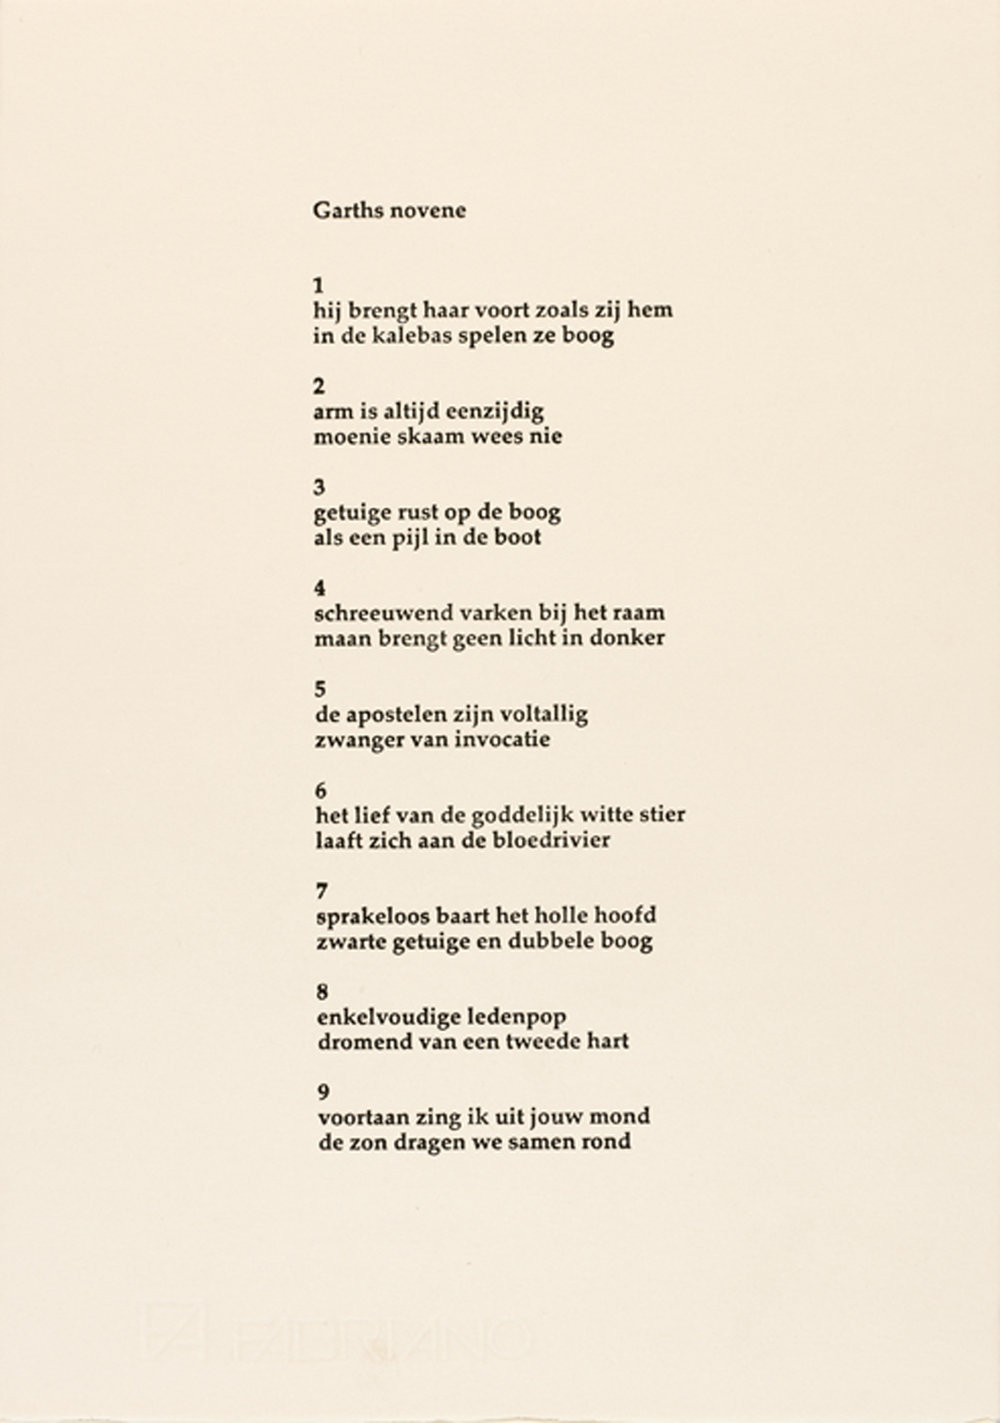 Garth Erasmus    Garth novene (poem)   2003  screenprint  edition   35  image   330 x 235 mm (h x w)  paper 330 x 235 mm (h x w)